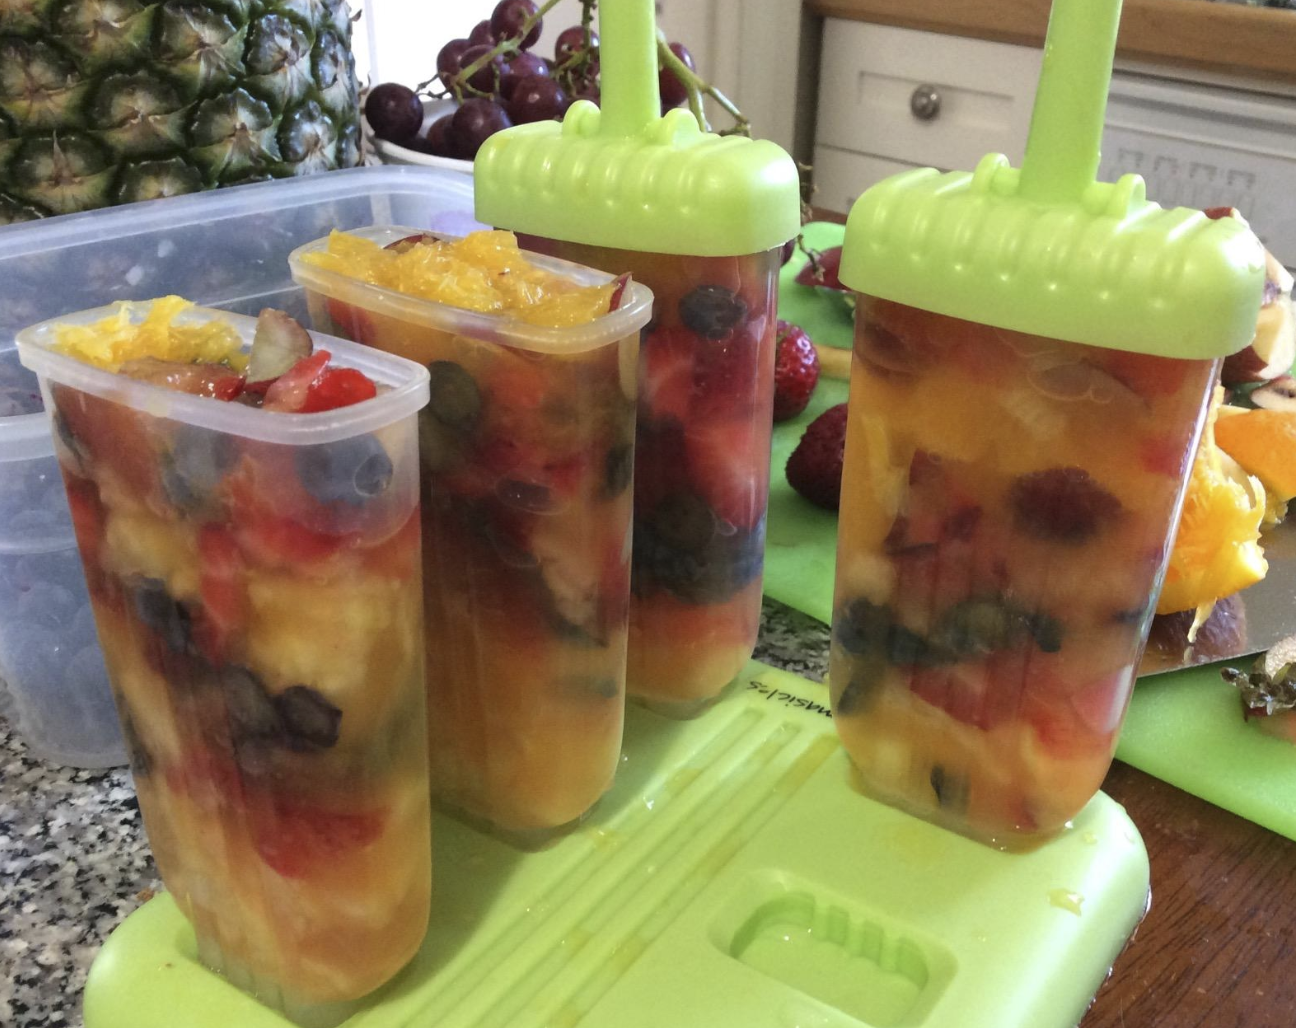 four popsicle containers filled with the fruit mix. Two have the tops on them that will serve as the sticks